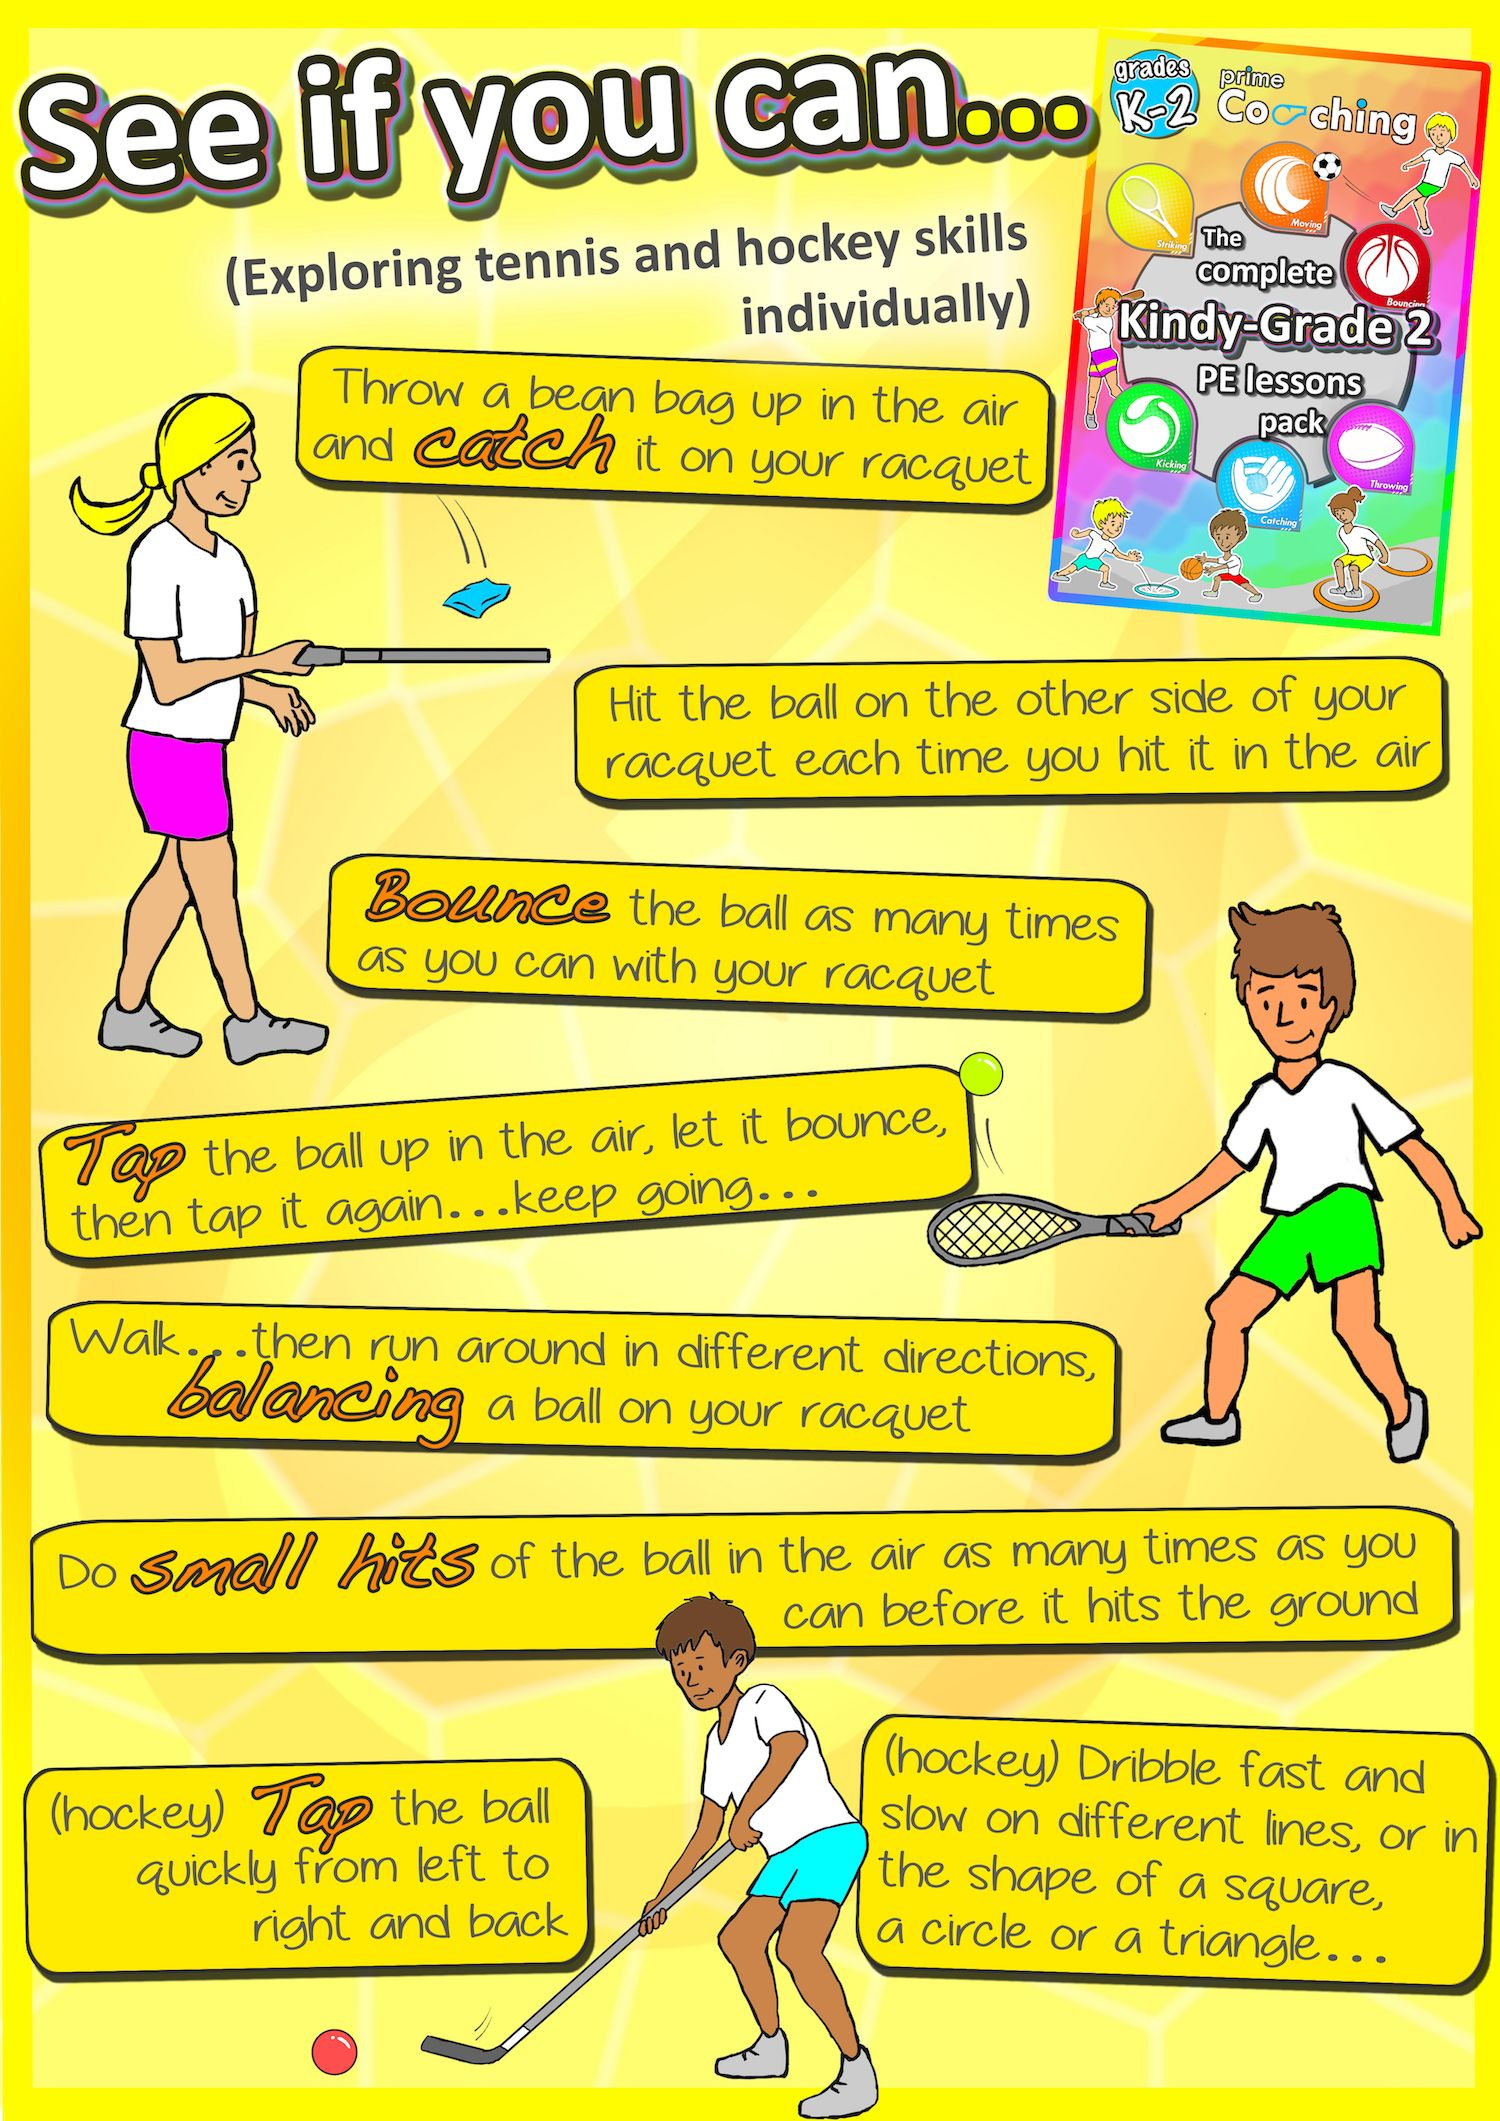 learning cues for tennis Skill: object manipulation equipment: short pool  demonstrate an  underhand roll to the group using a tennis ball • step forward into a lunge   cues • opposite foot • lean body forward • follow through • point at target  tips for.